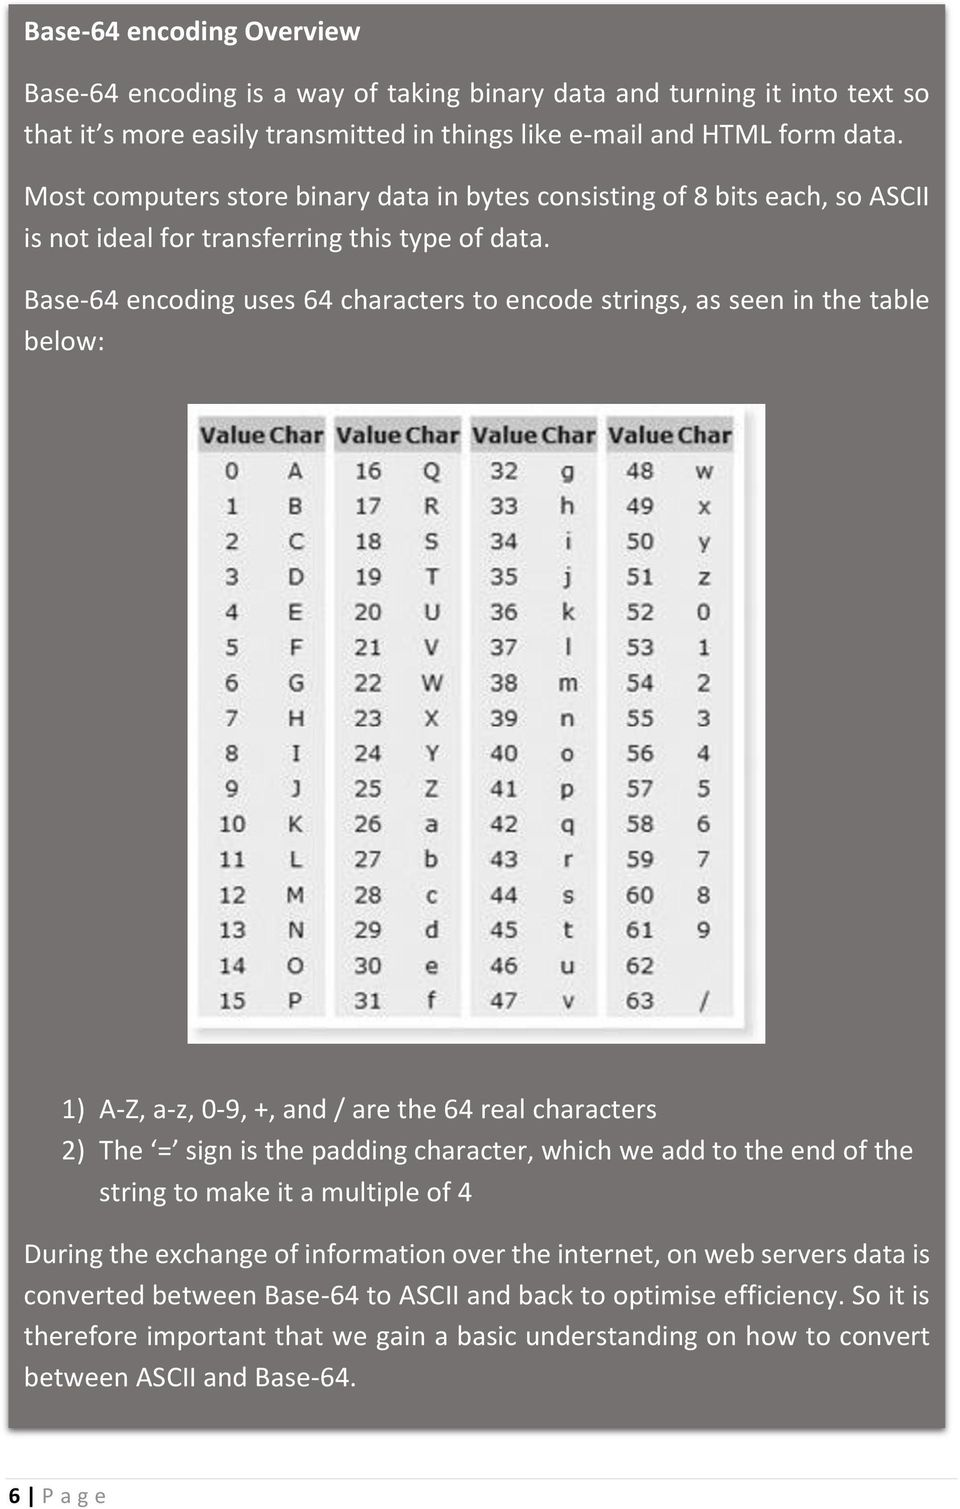 Base-64 encoding uses 64 characters to encode strings, as seen in the table below: 1) A-Z, a-z, 0-9, +, and / are the 64 real characters 2) The = sign is the padding character, which we add to the